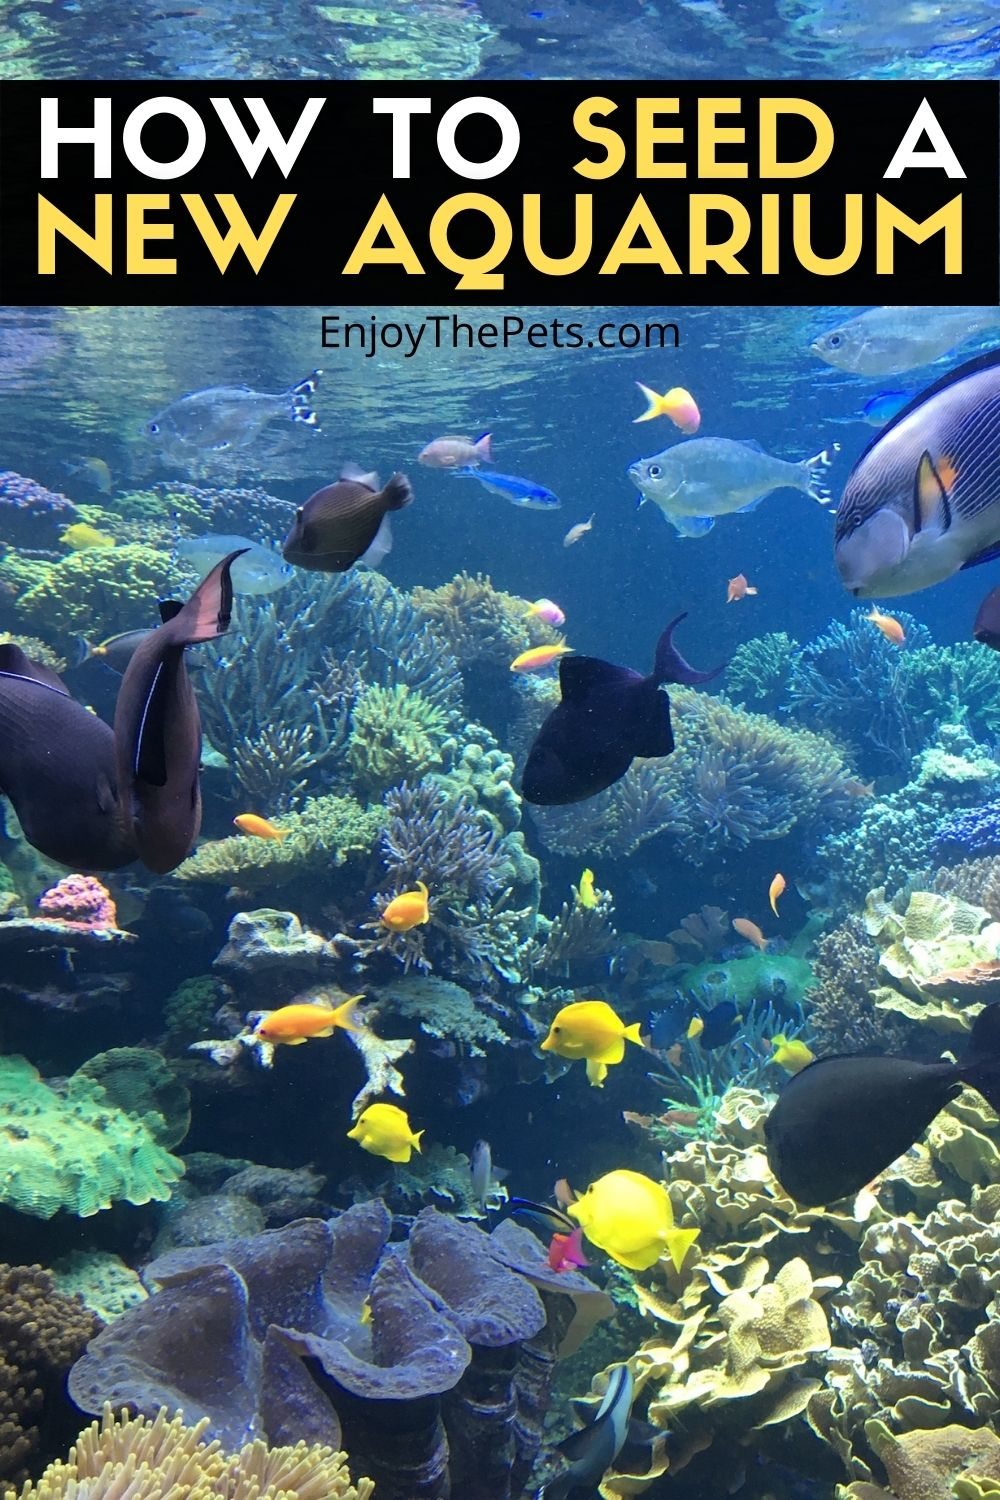 HOW TO SEED A NEW AQUARIUM